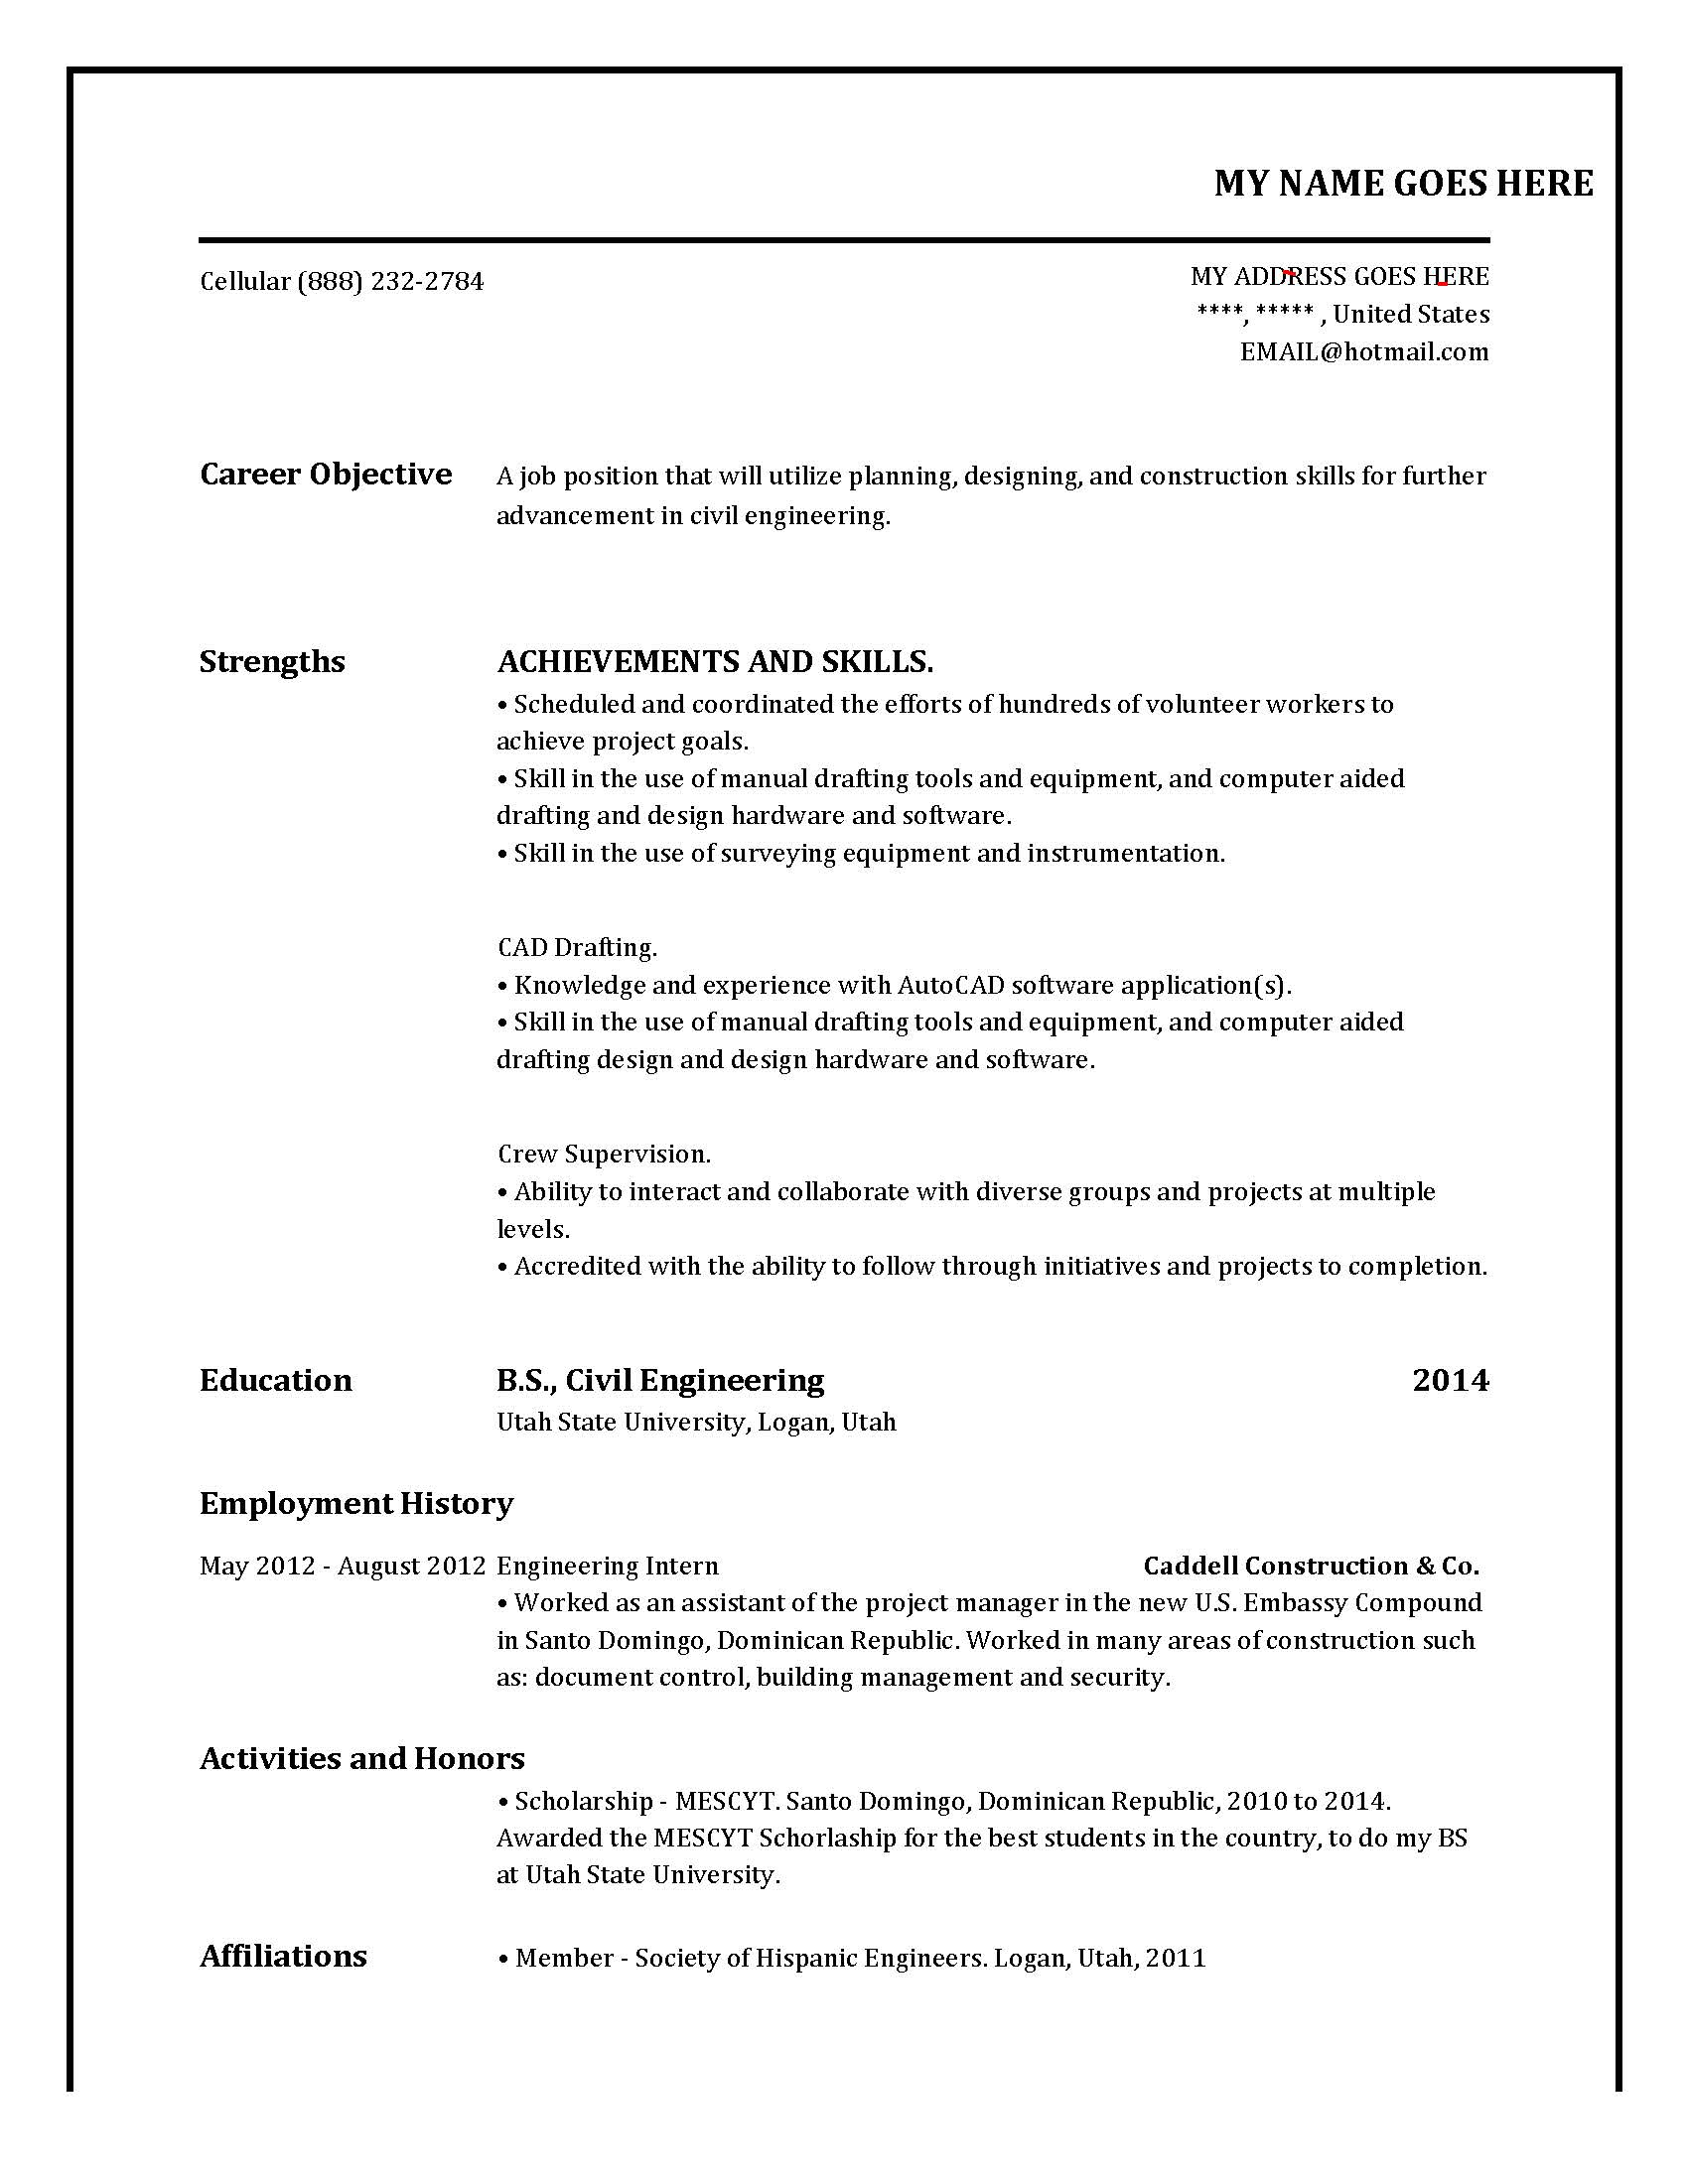 create my resume tk category curriculum vitae